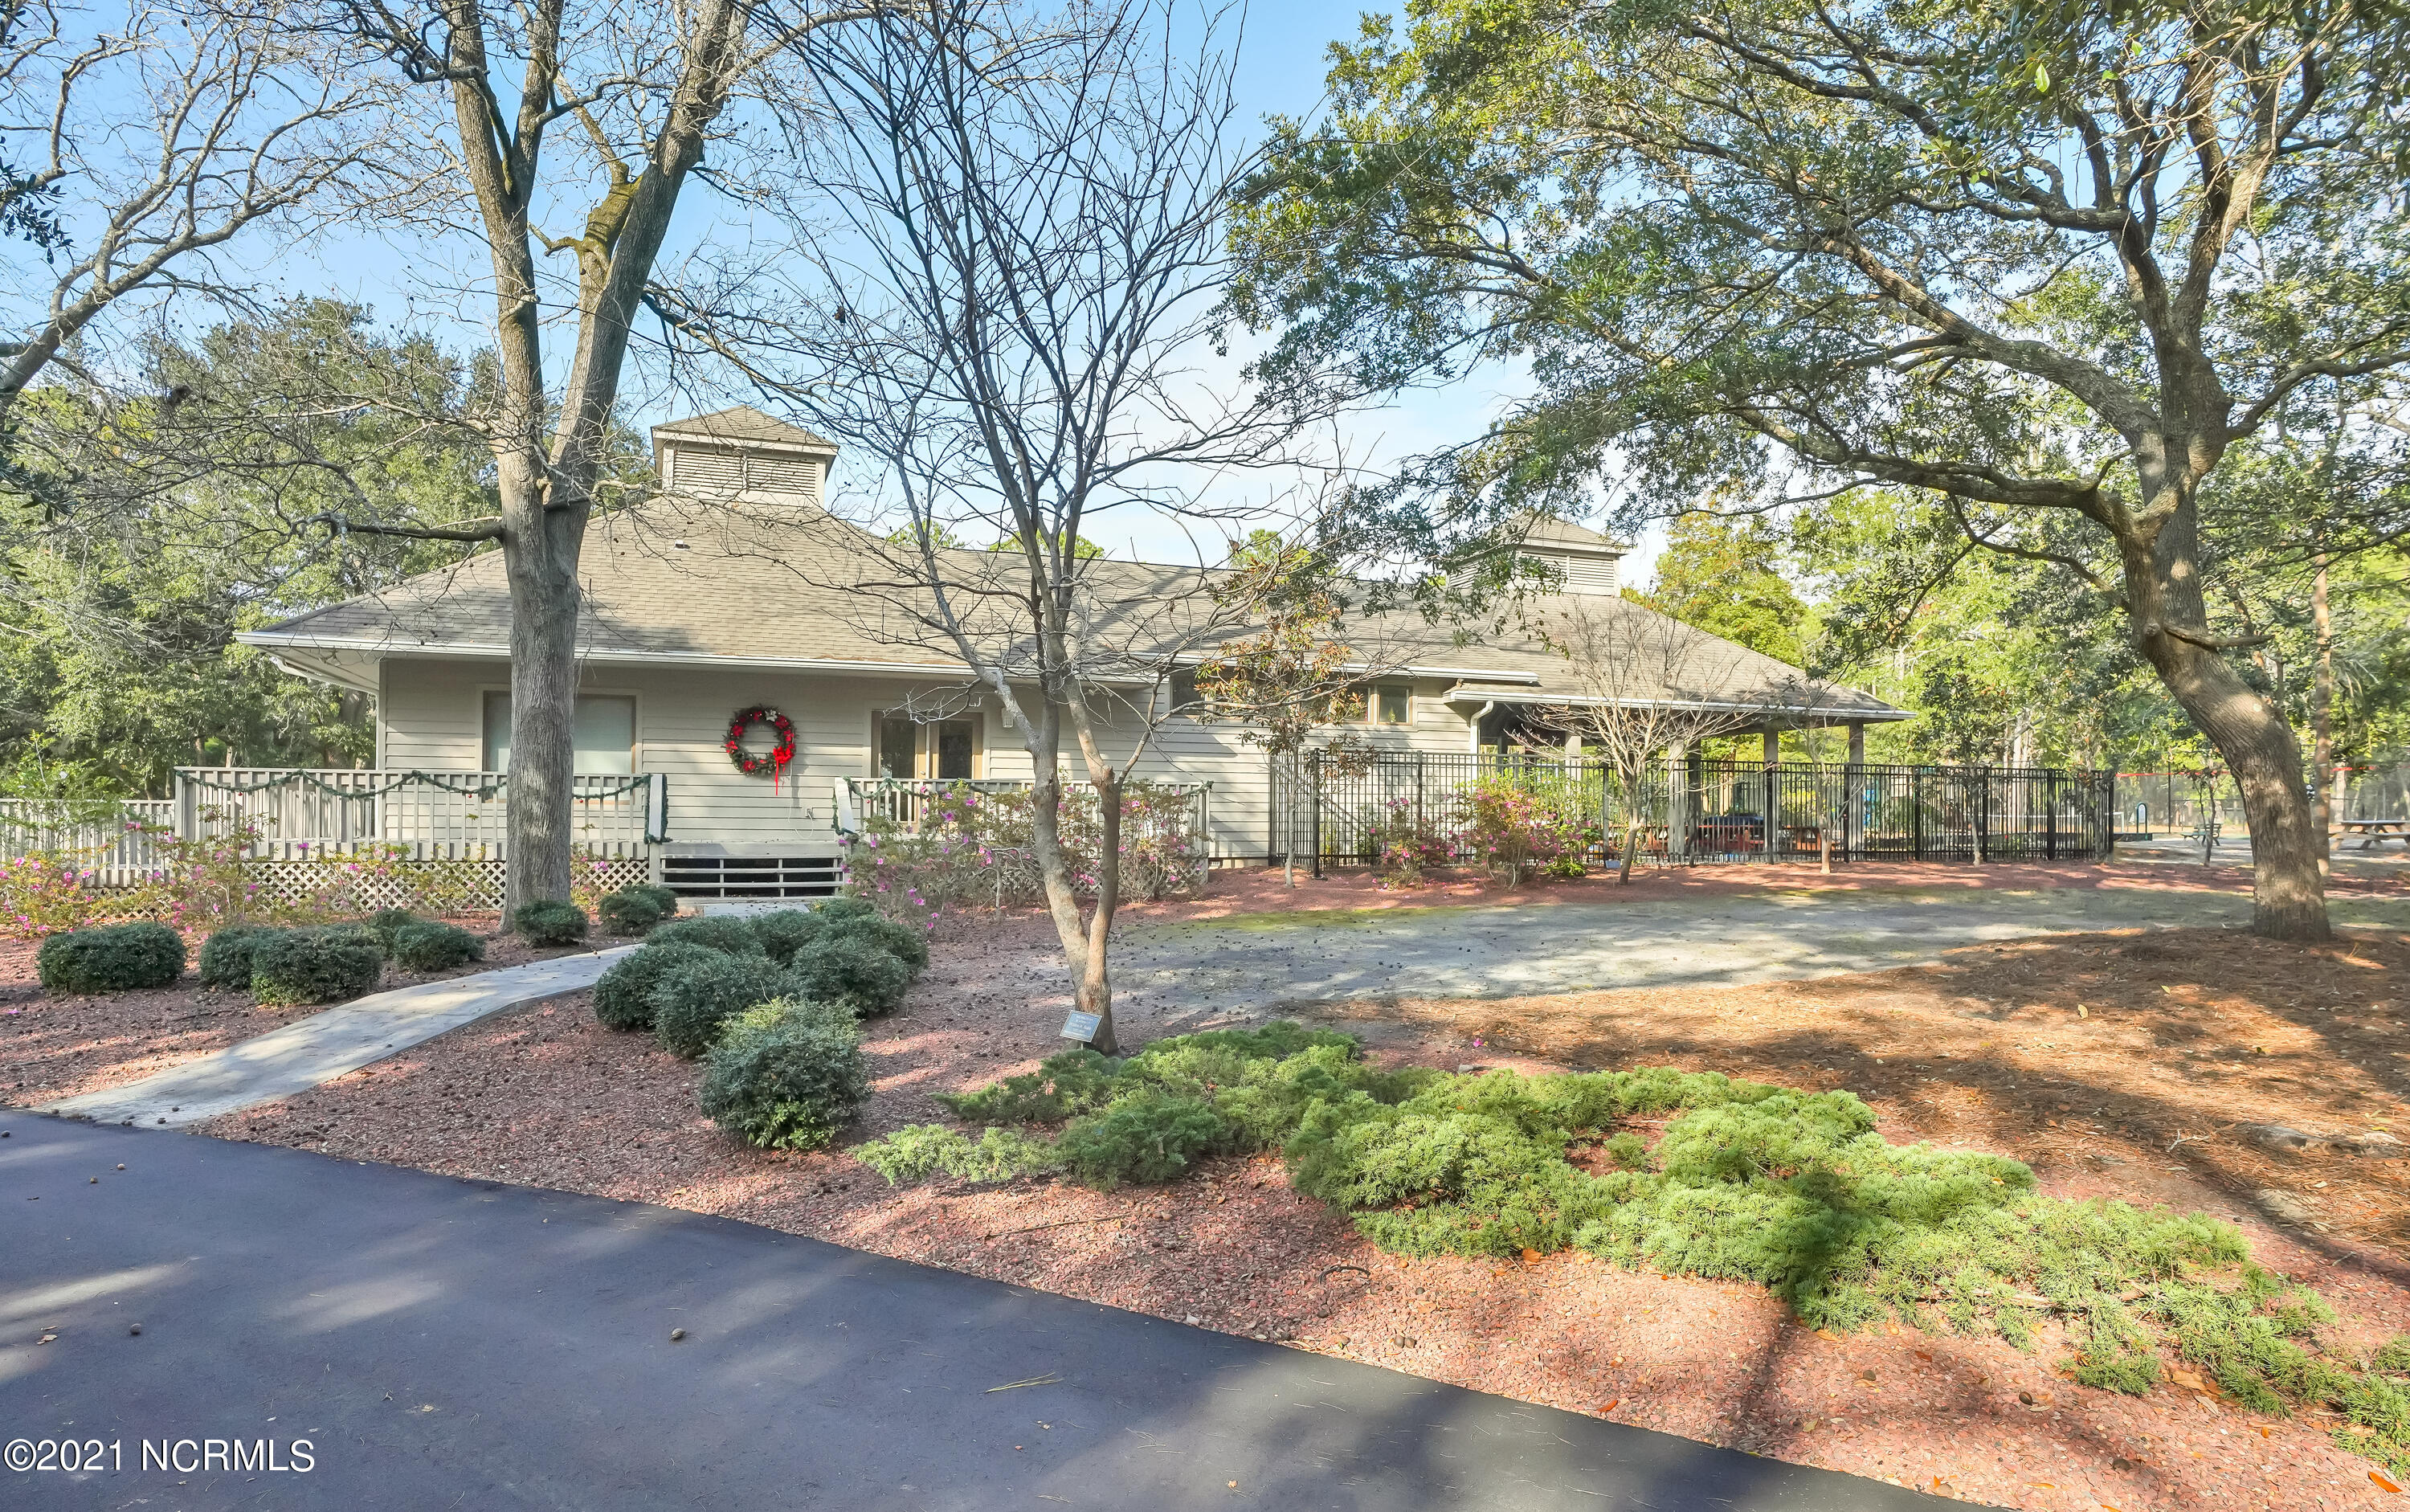 3187 Mullet Creek Place, Bolivia, North Carolina 28422, 3 Bedrooms Bedrooms, 9 Rooms Rooms,2 BathroomsBathrooms,Single family residence,For sale,Mullet Creek,100284429